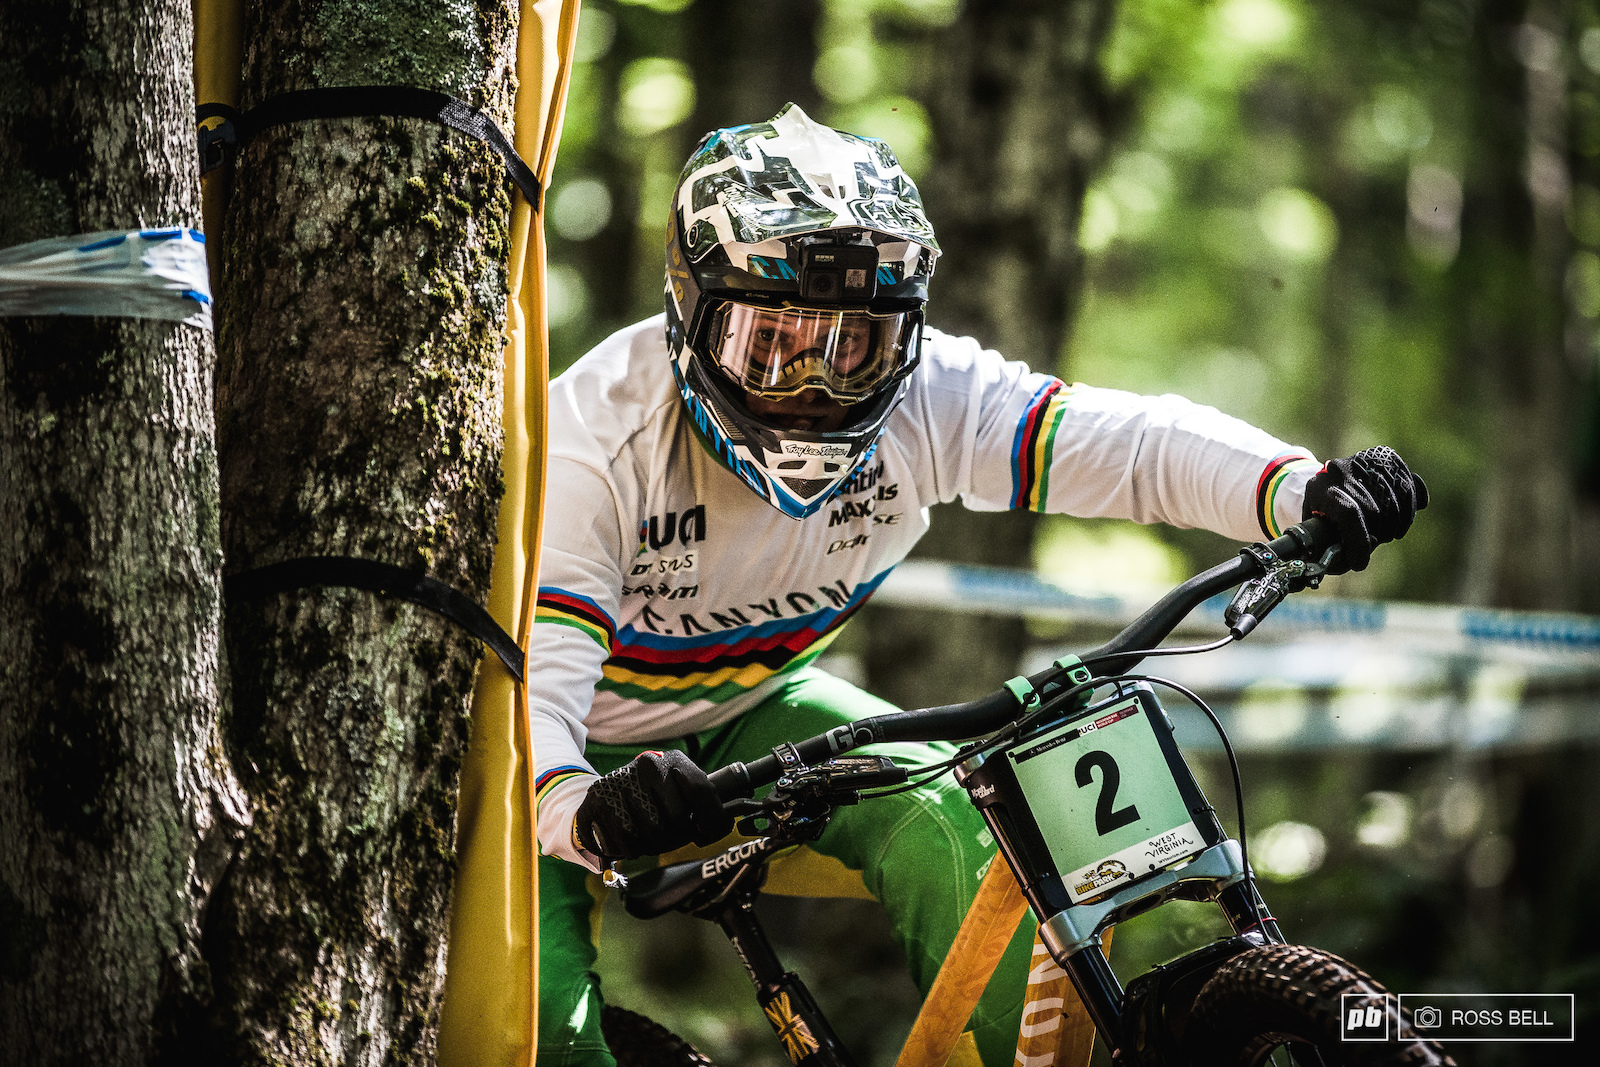 Kye A Hern keeping it tight to the trees in the World Champs jersey he won the previous weekend in Mont Sainte Anne.